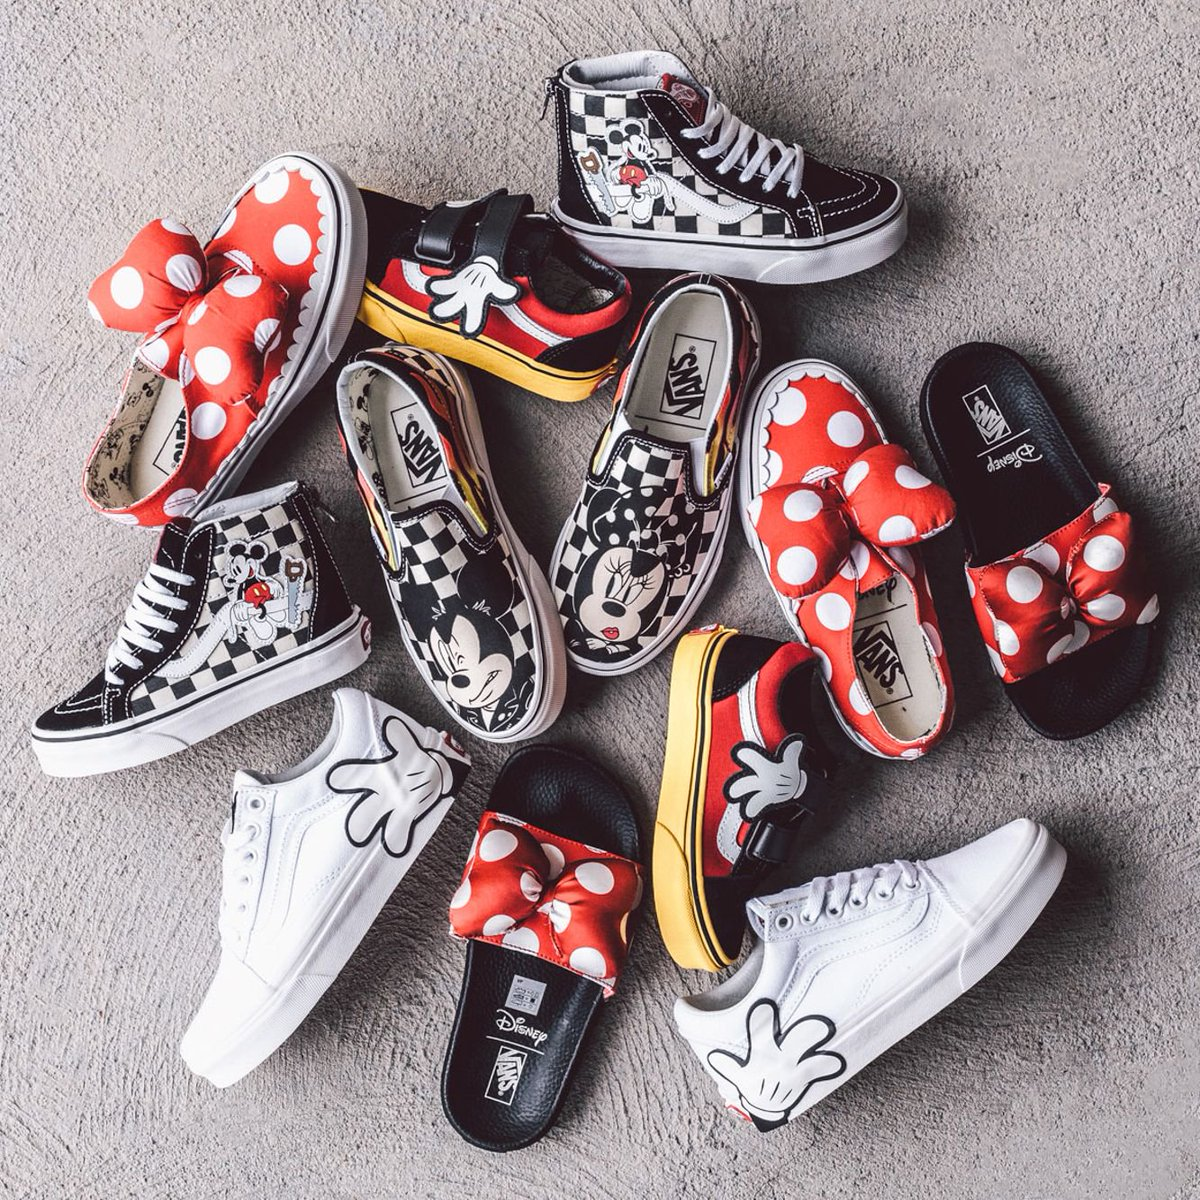 2b4b6401e2 The Vans x Disney Mickey Mouse 90th Anniversary collection is available now  online at http   BAITme.com .pic.twitter.com F69krNkfd8